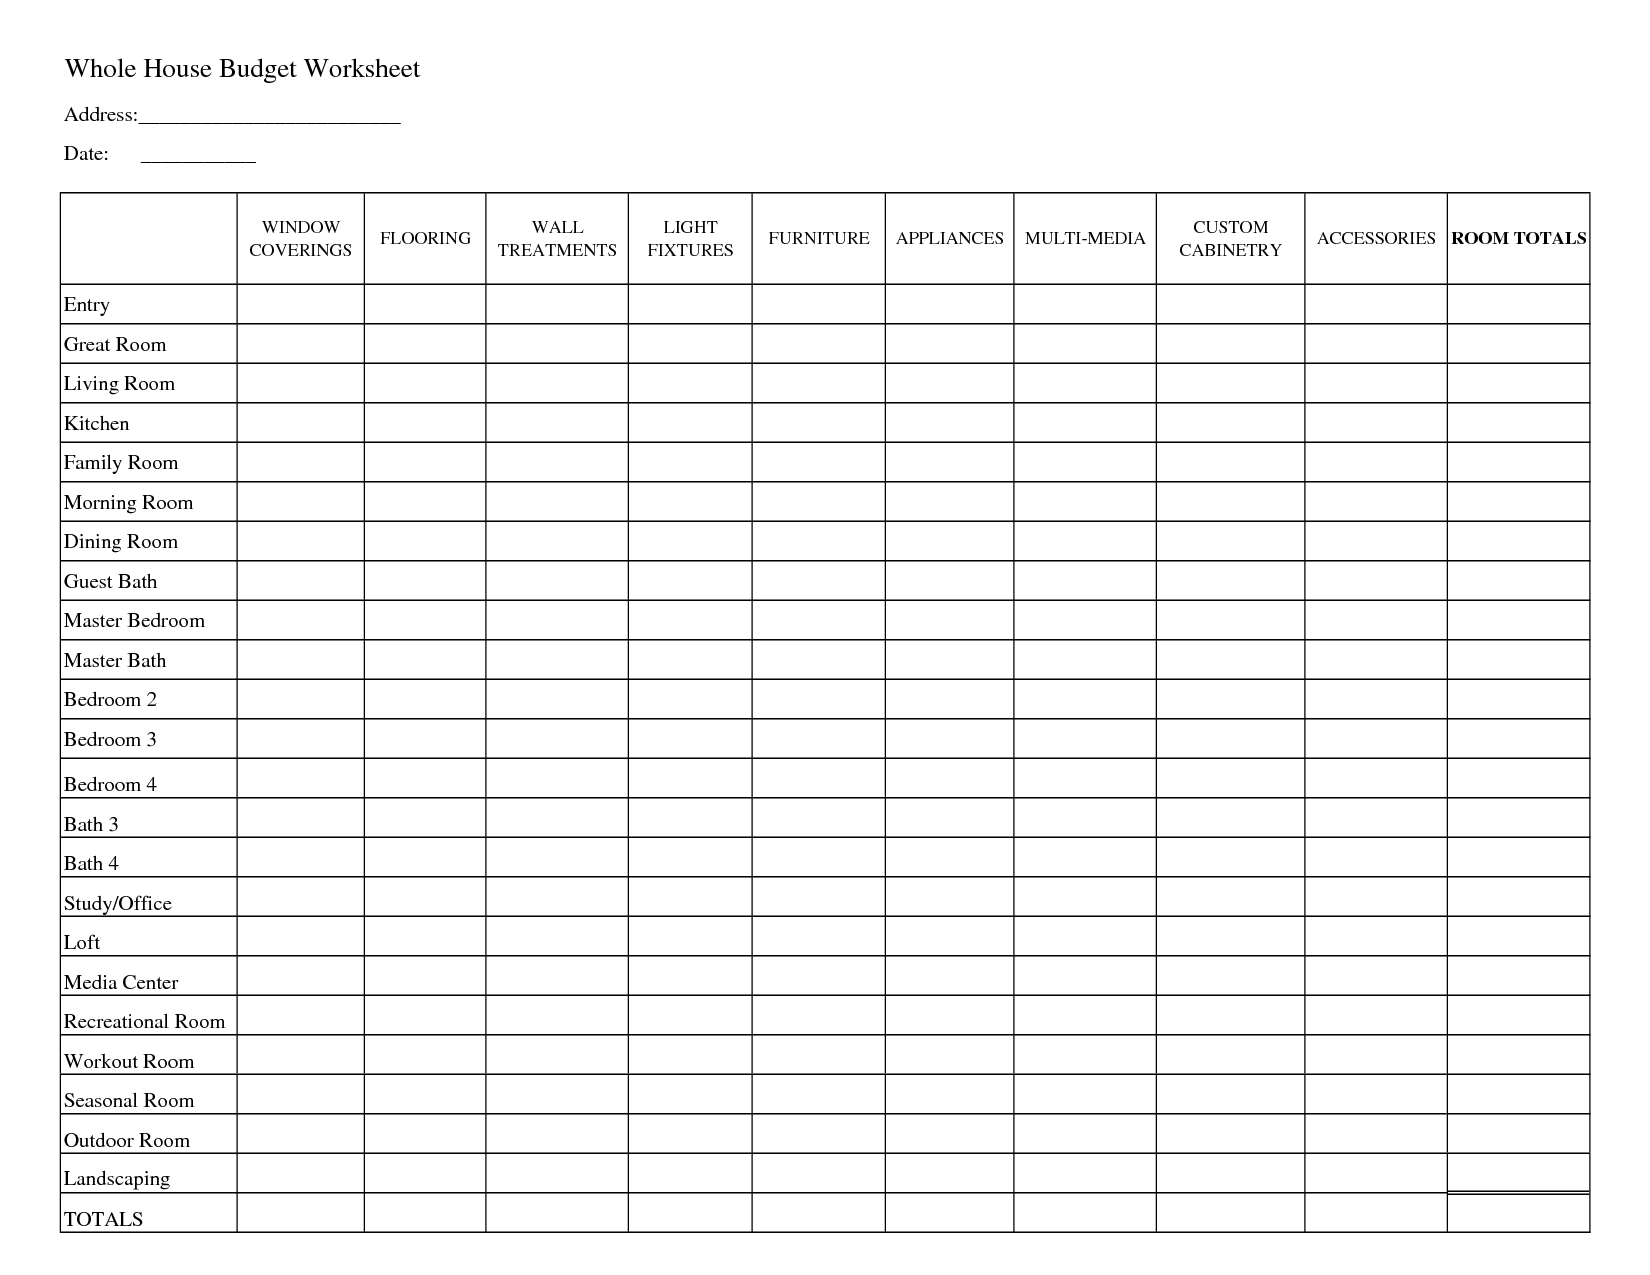 Printable Household Budget Worksheets   Whole House Budget Worksheet - Free Printable Family Budget